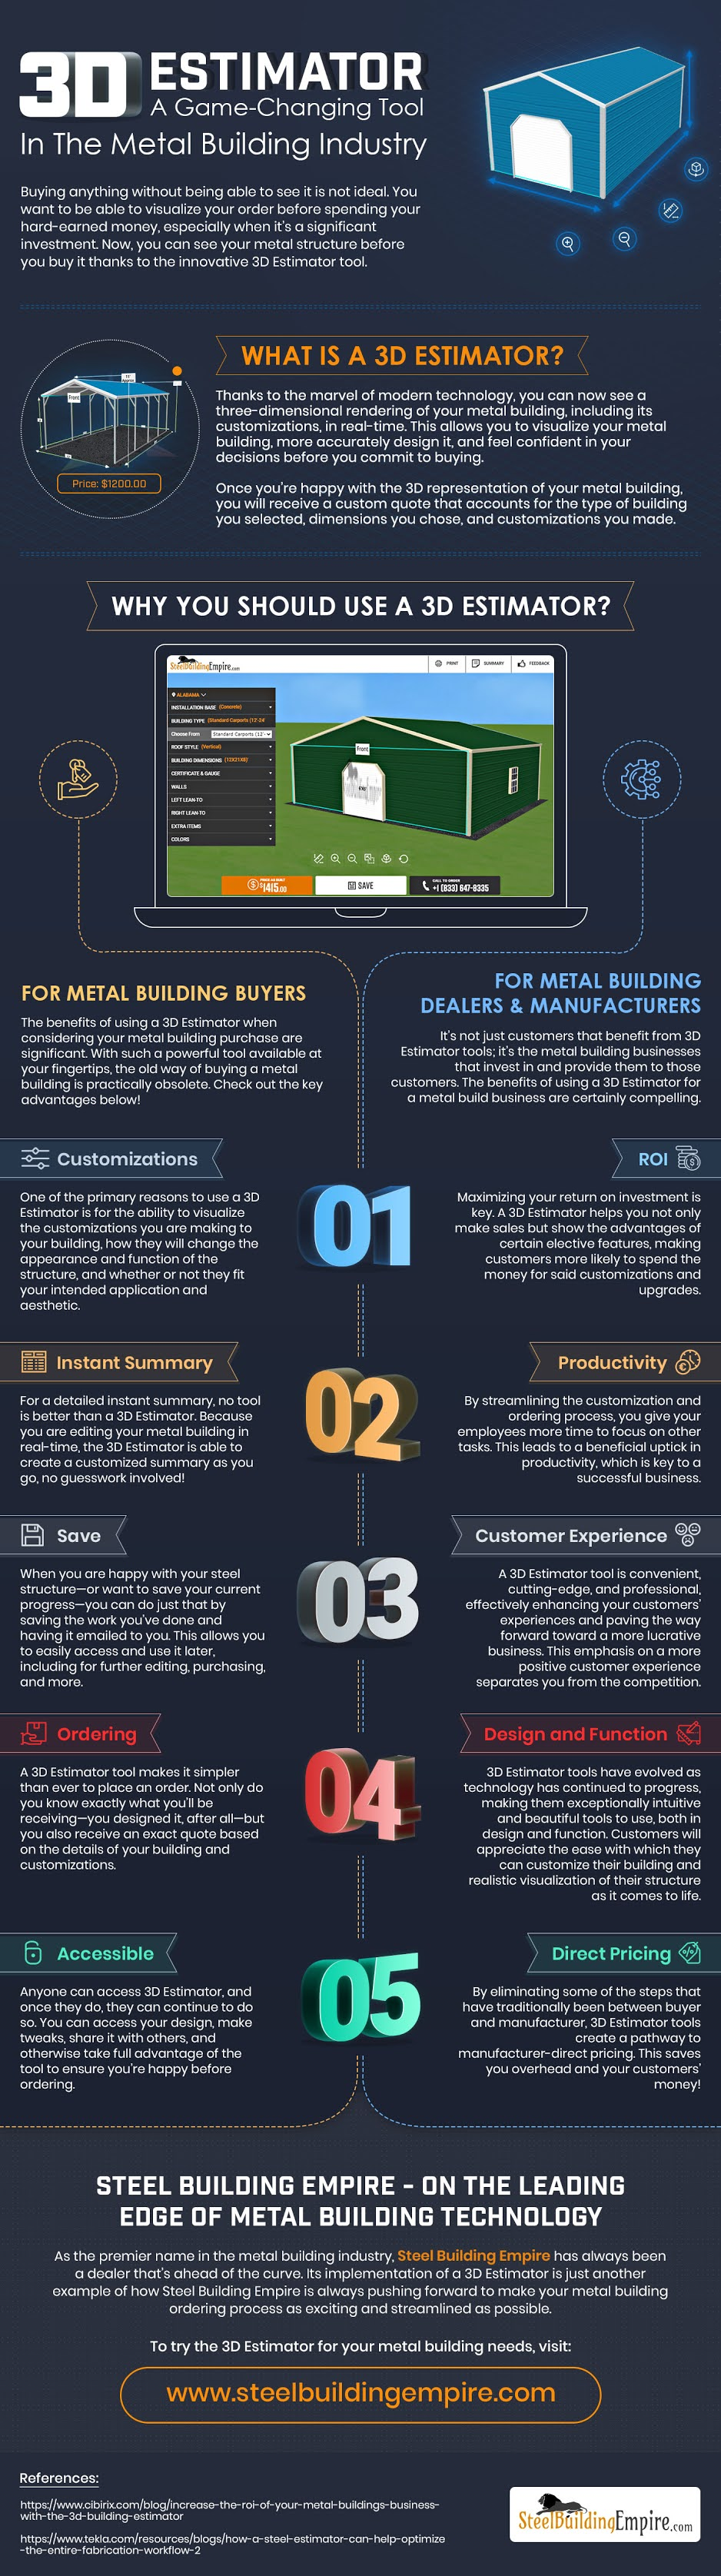 3D Estimator – A Game-Changing Tool in the Metal Building Industry #infographic #3d Estimator #Metal Buildings